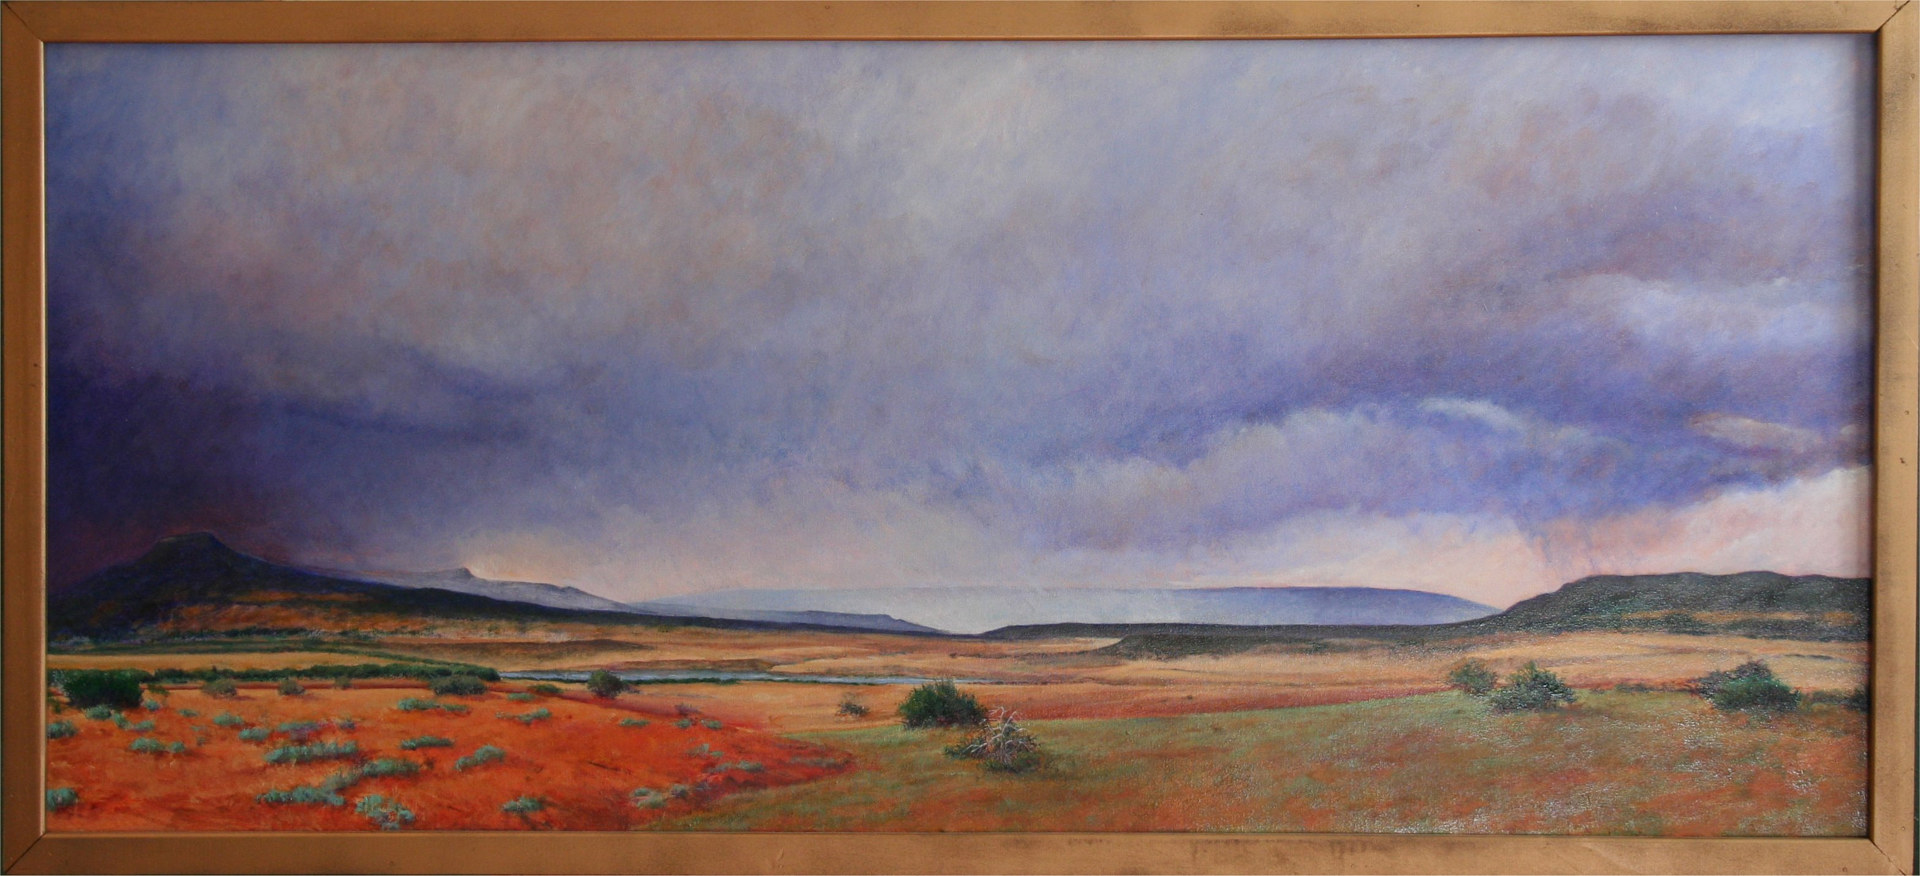 On Leaving Ghost Ranch New Mexico 24x54 by Gary Nowlin